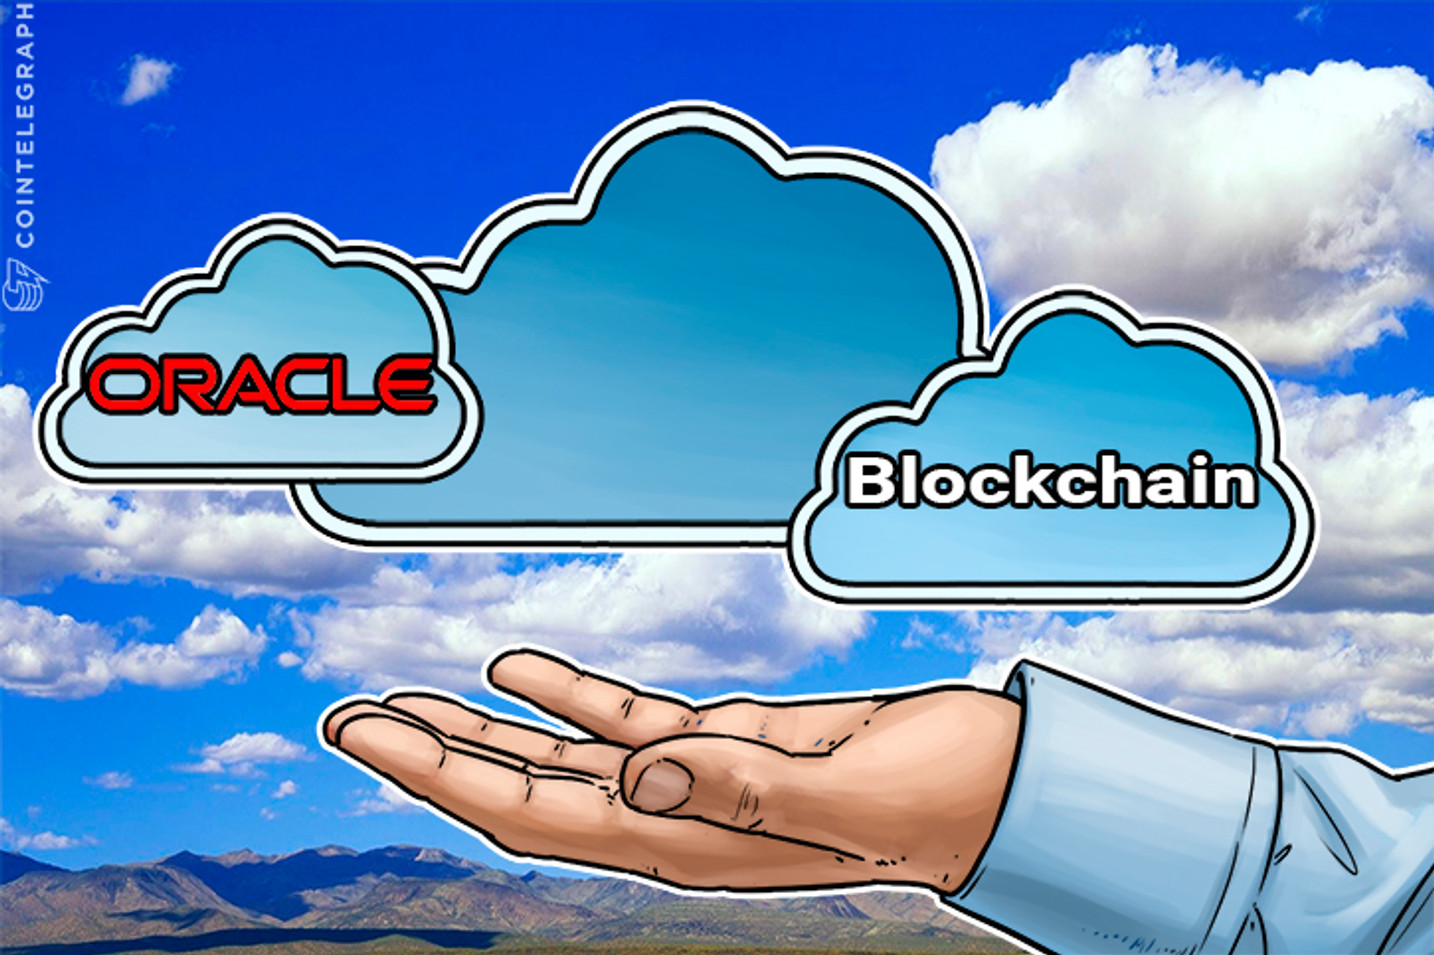 Oracle Joins the Blockchain Craze, Uses Hyperledger Fabric